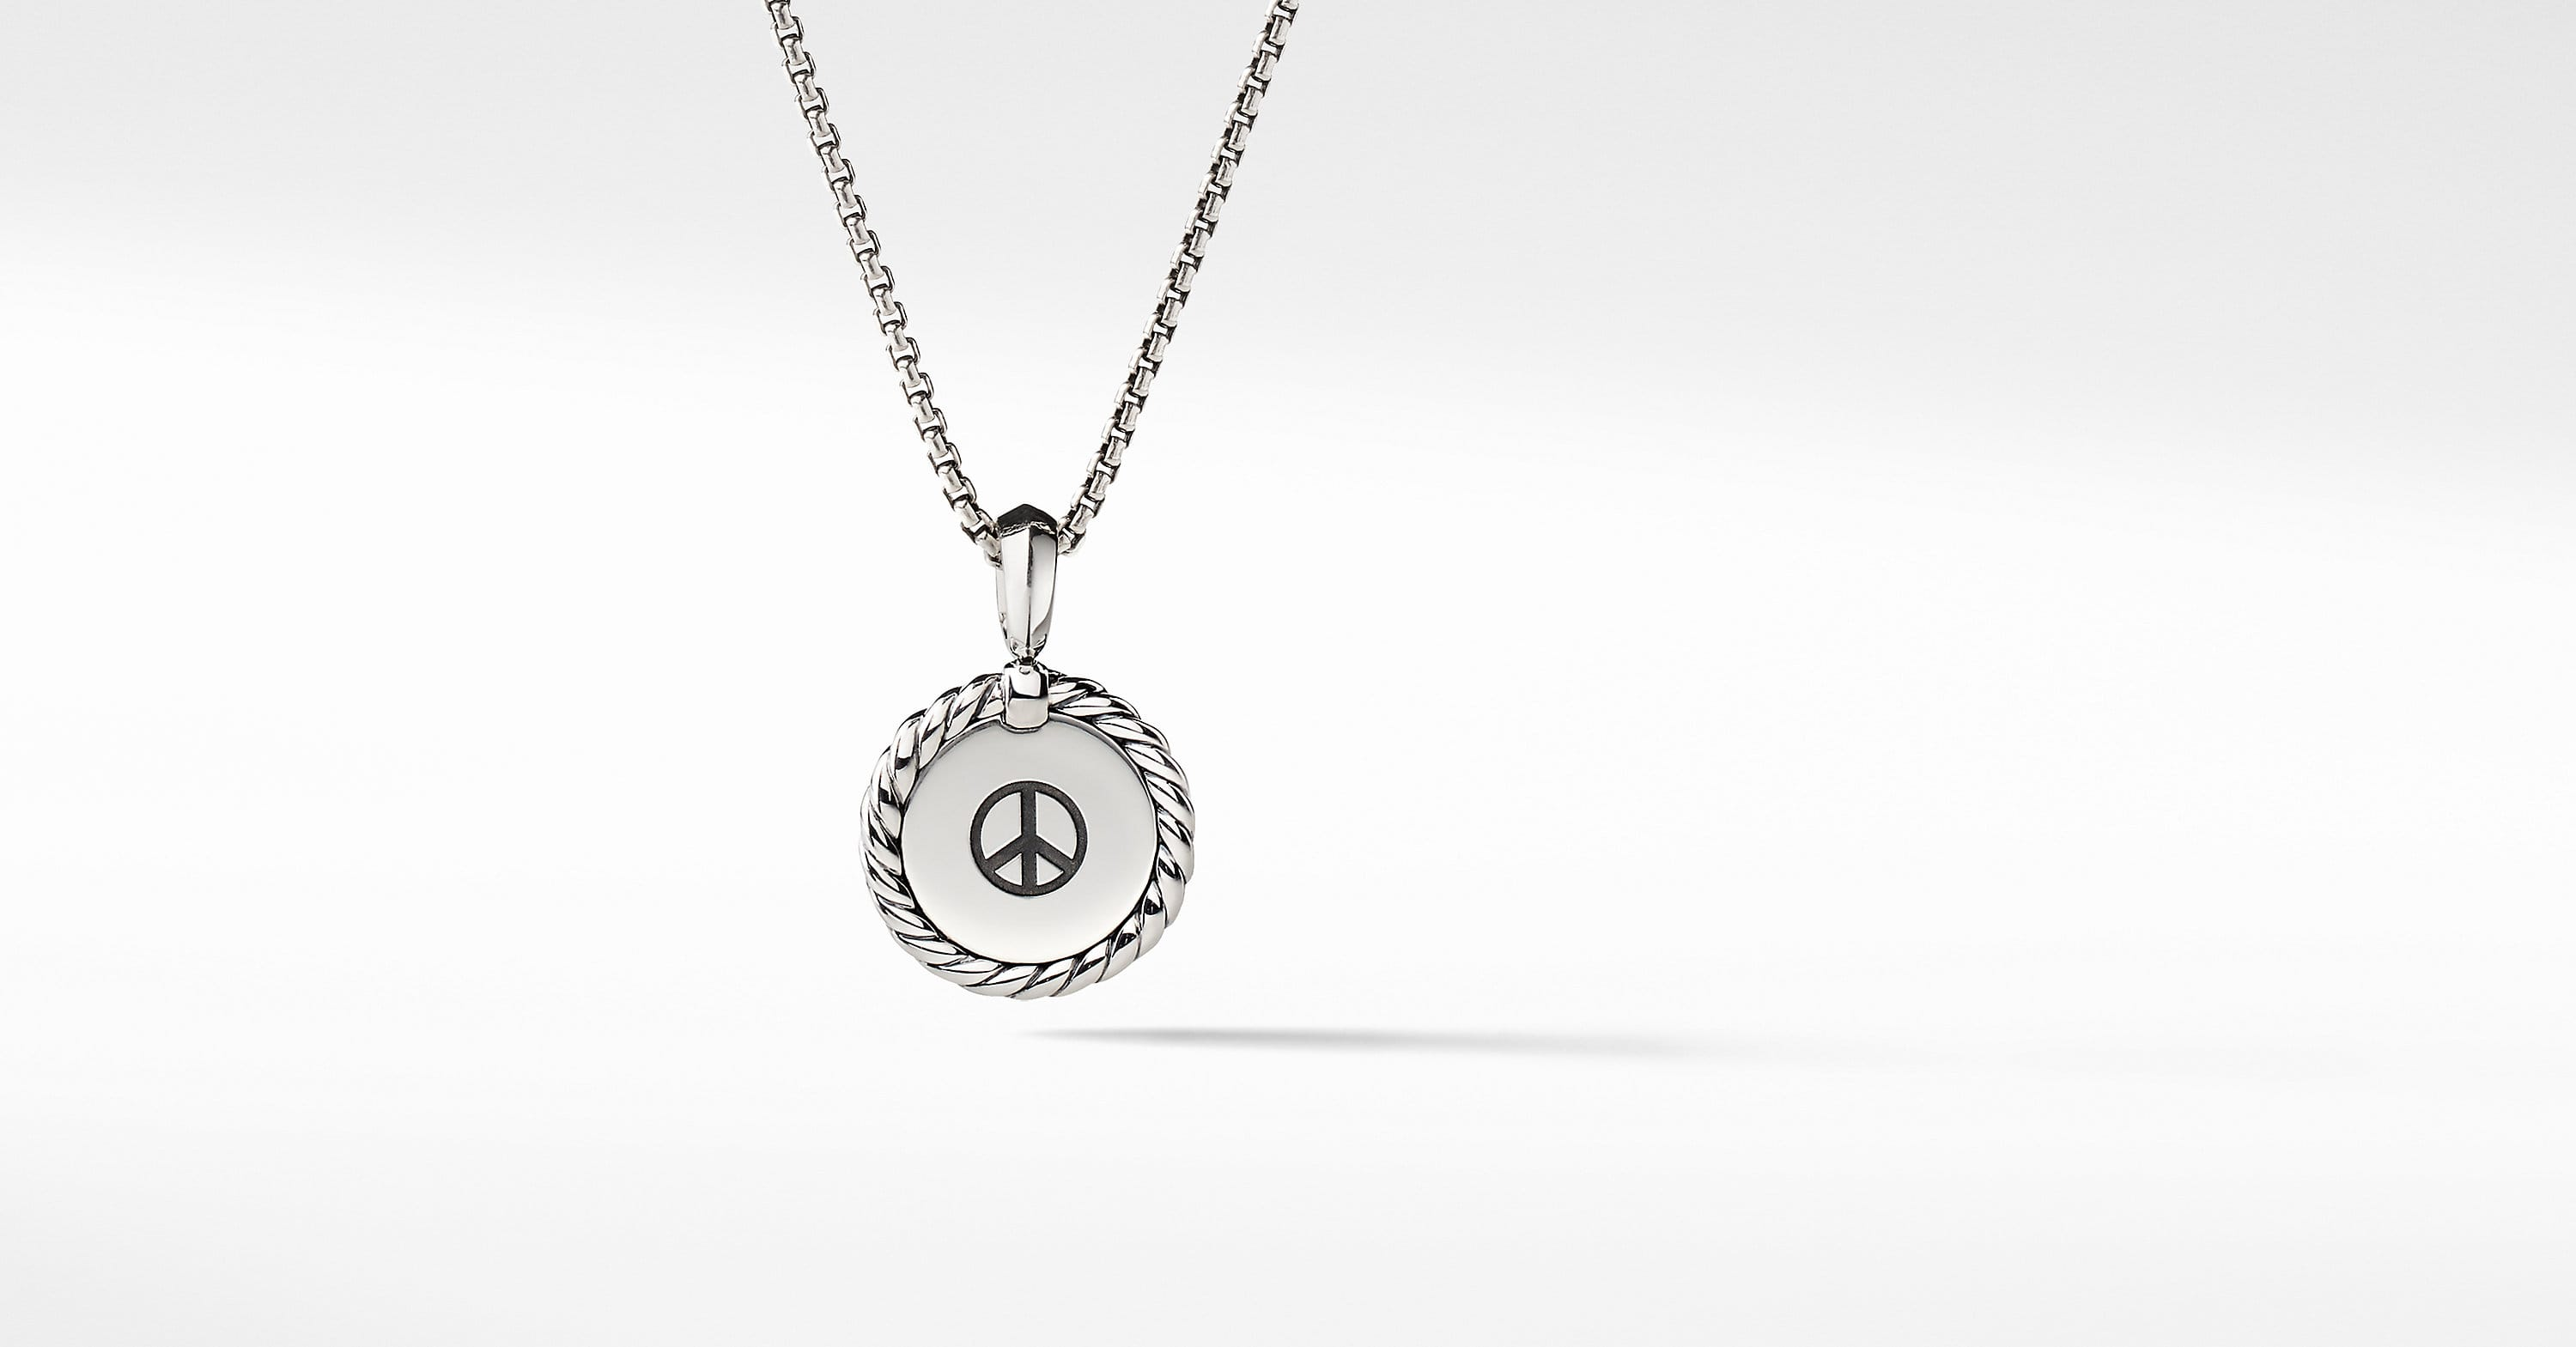 Cable Collectibles Engravable Pendant Necklace